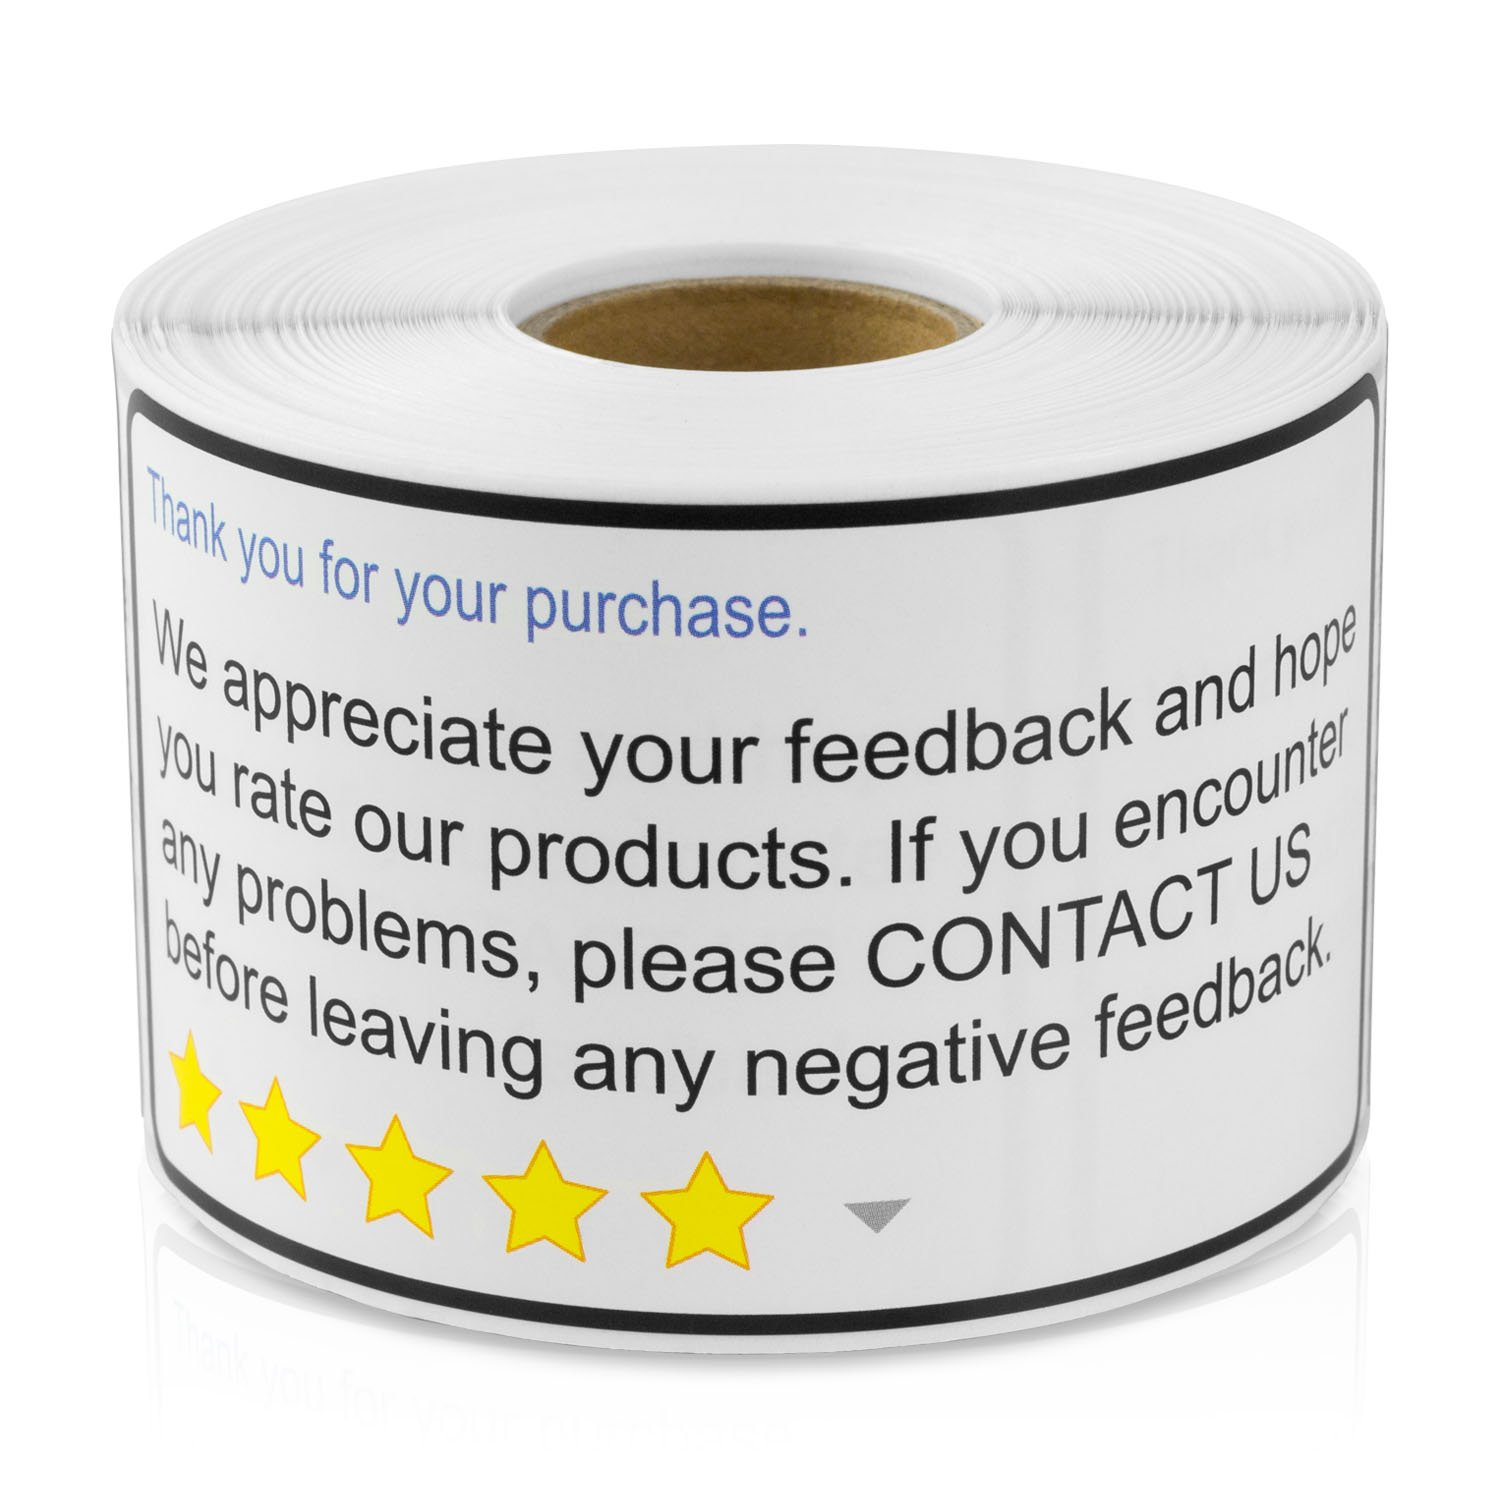 THANK YOU FOR YOUR PURCHASE 2''x 4'' Amazon Walmart eBay Thank You For Your Purchase Positive Negative Feedback (300 labels per roll / 10 rolls)